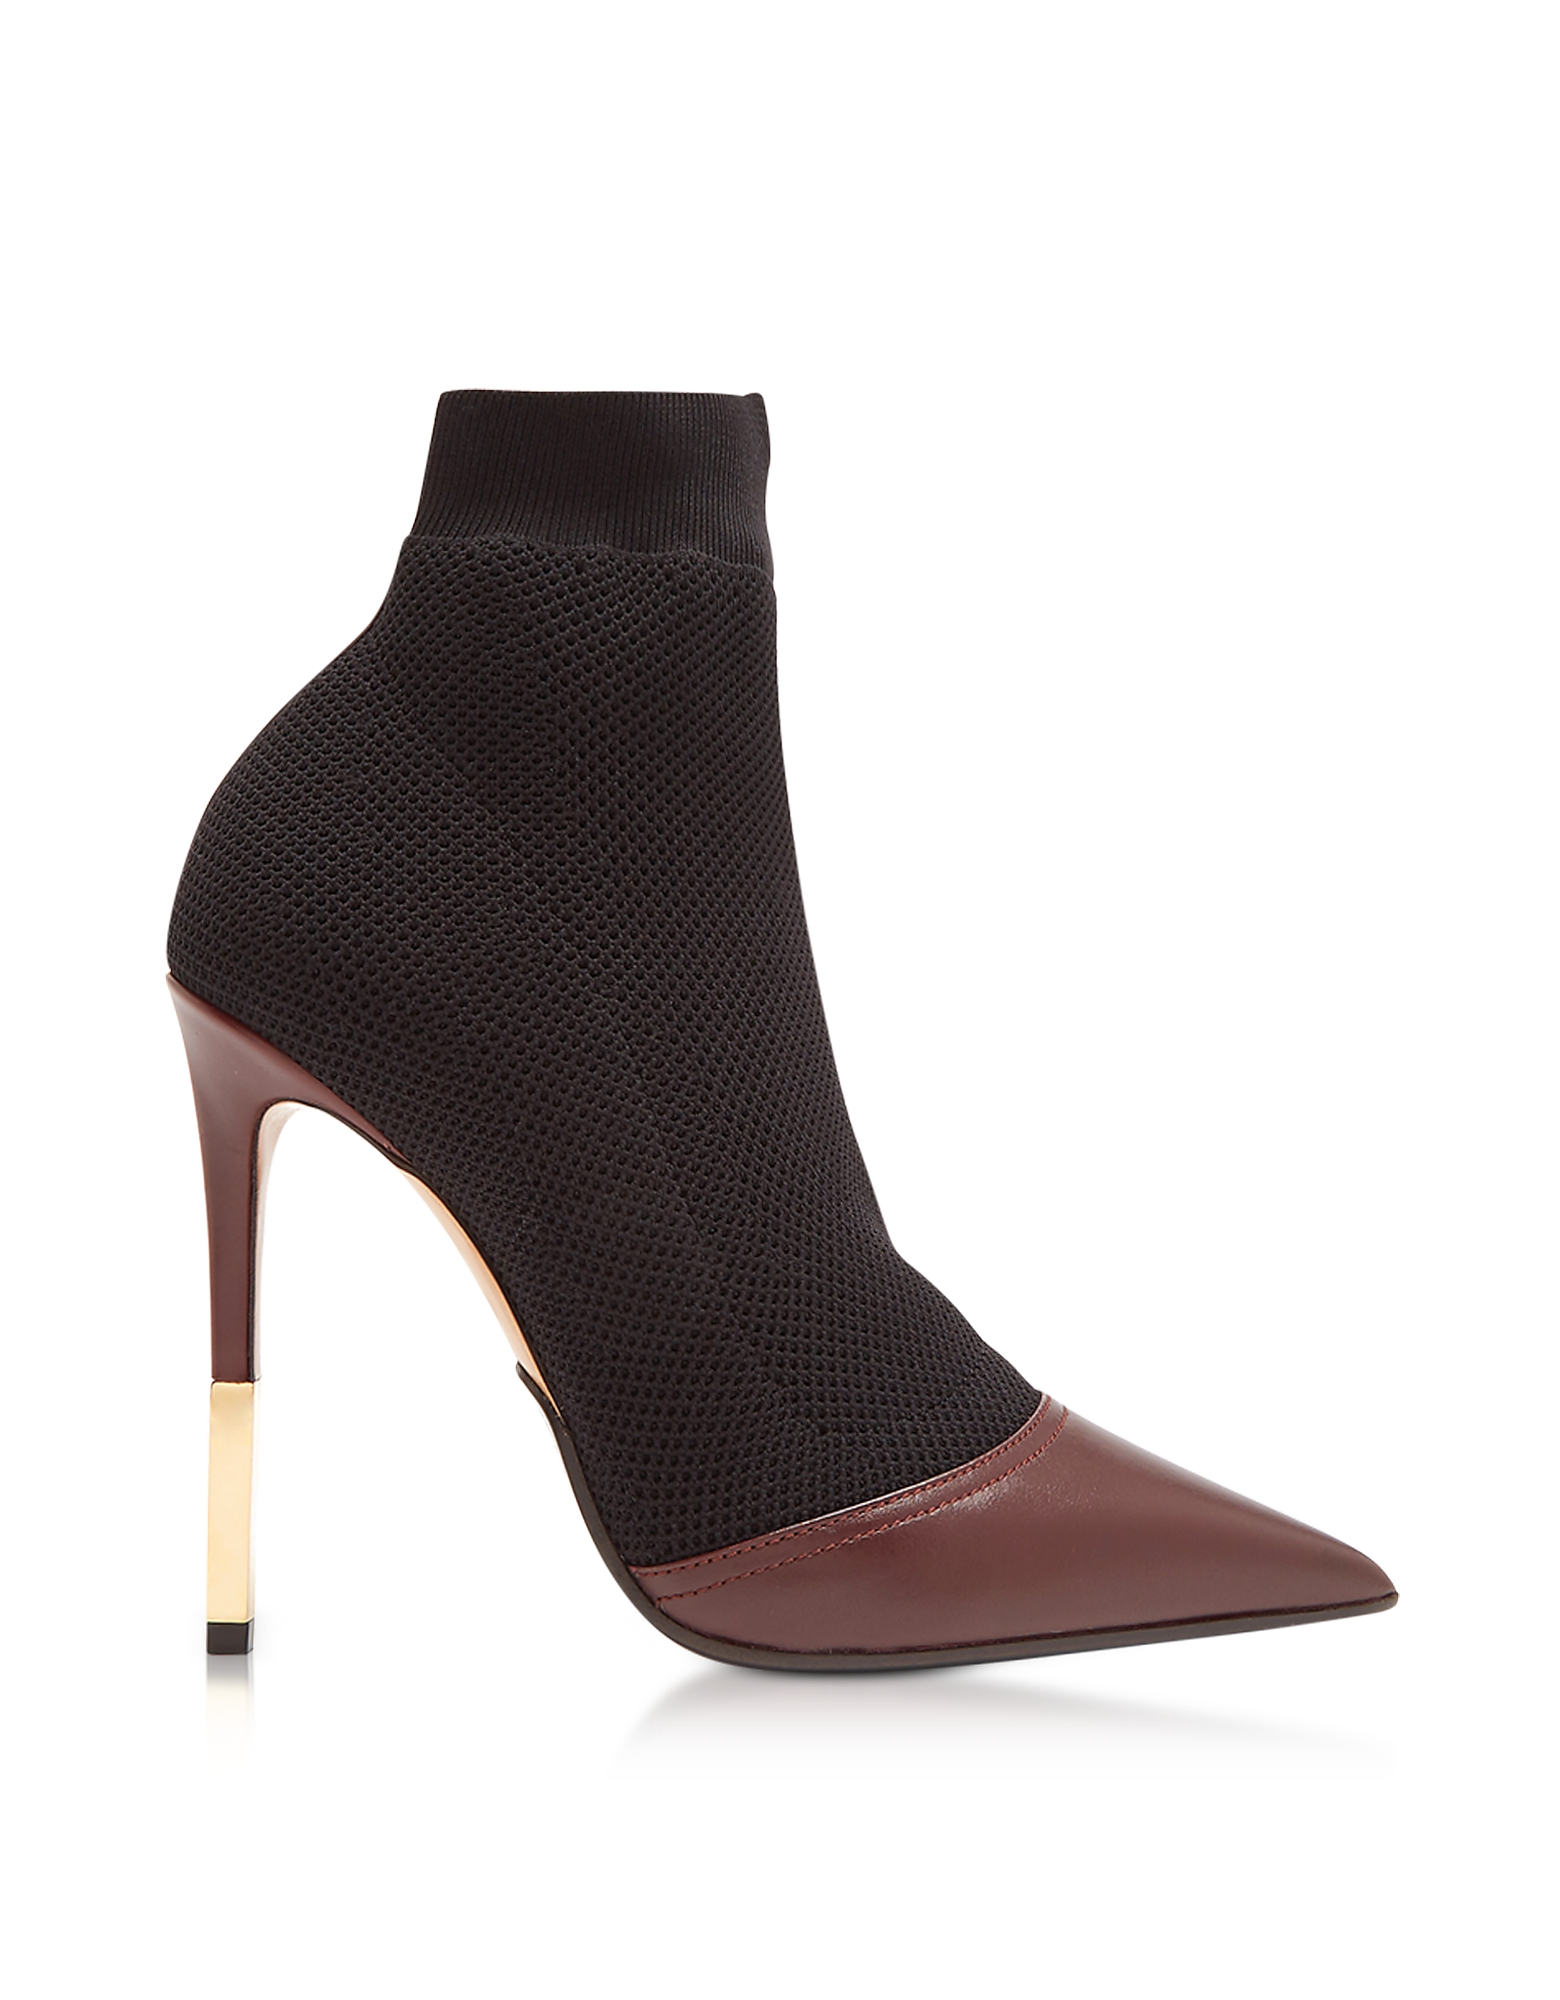 Balmain Shoes, Aurore Burgundy Point-toe Honeycomb-knit Ankle Boots